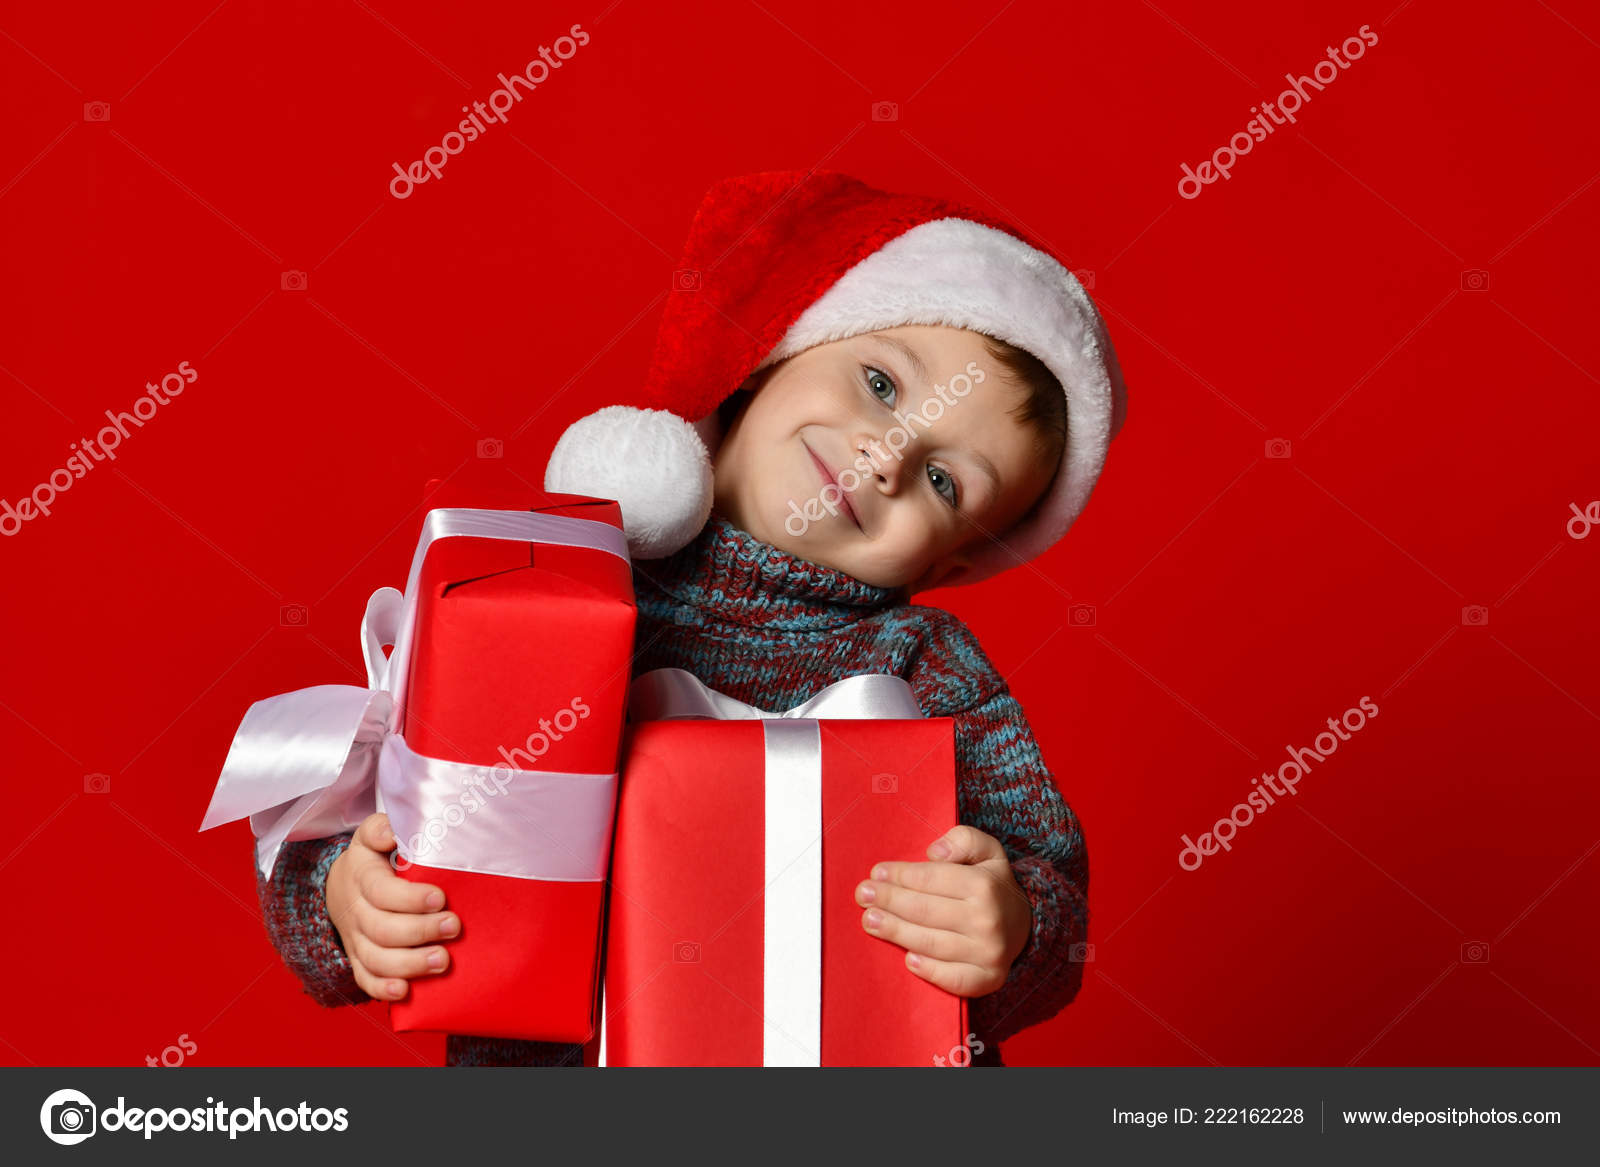 45ec4990d57b2 Funny smiling child in Santa red hat holding Christmas gift in hand. — Stock  Photo